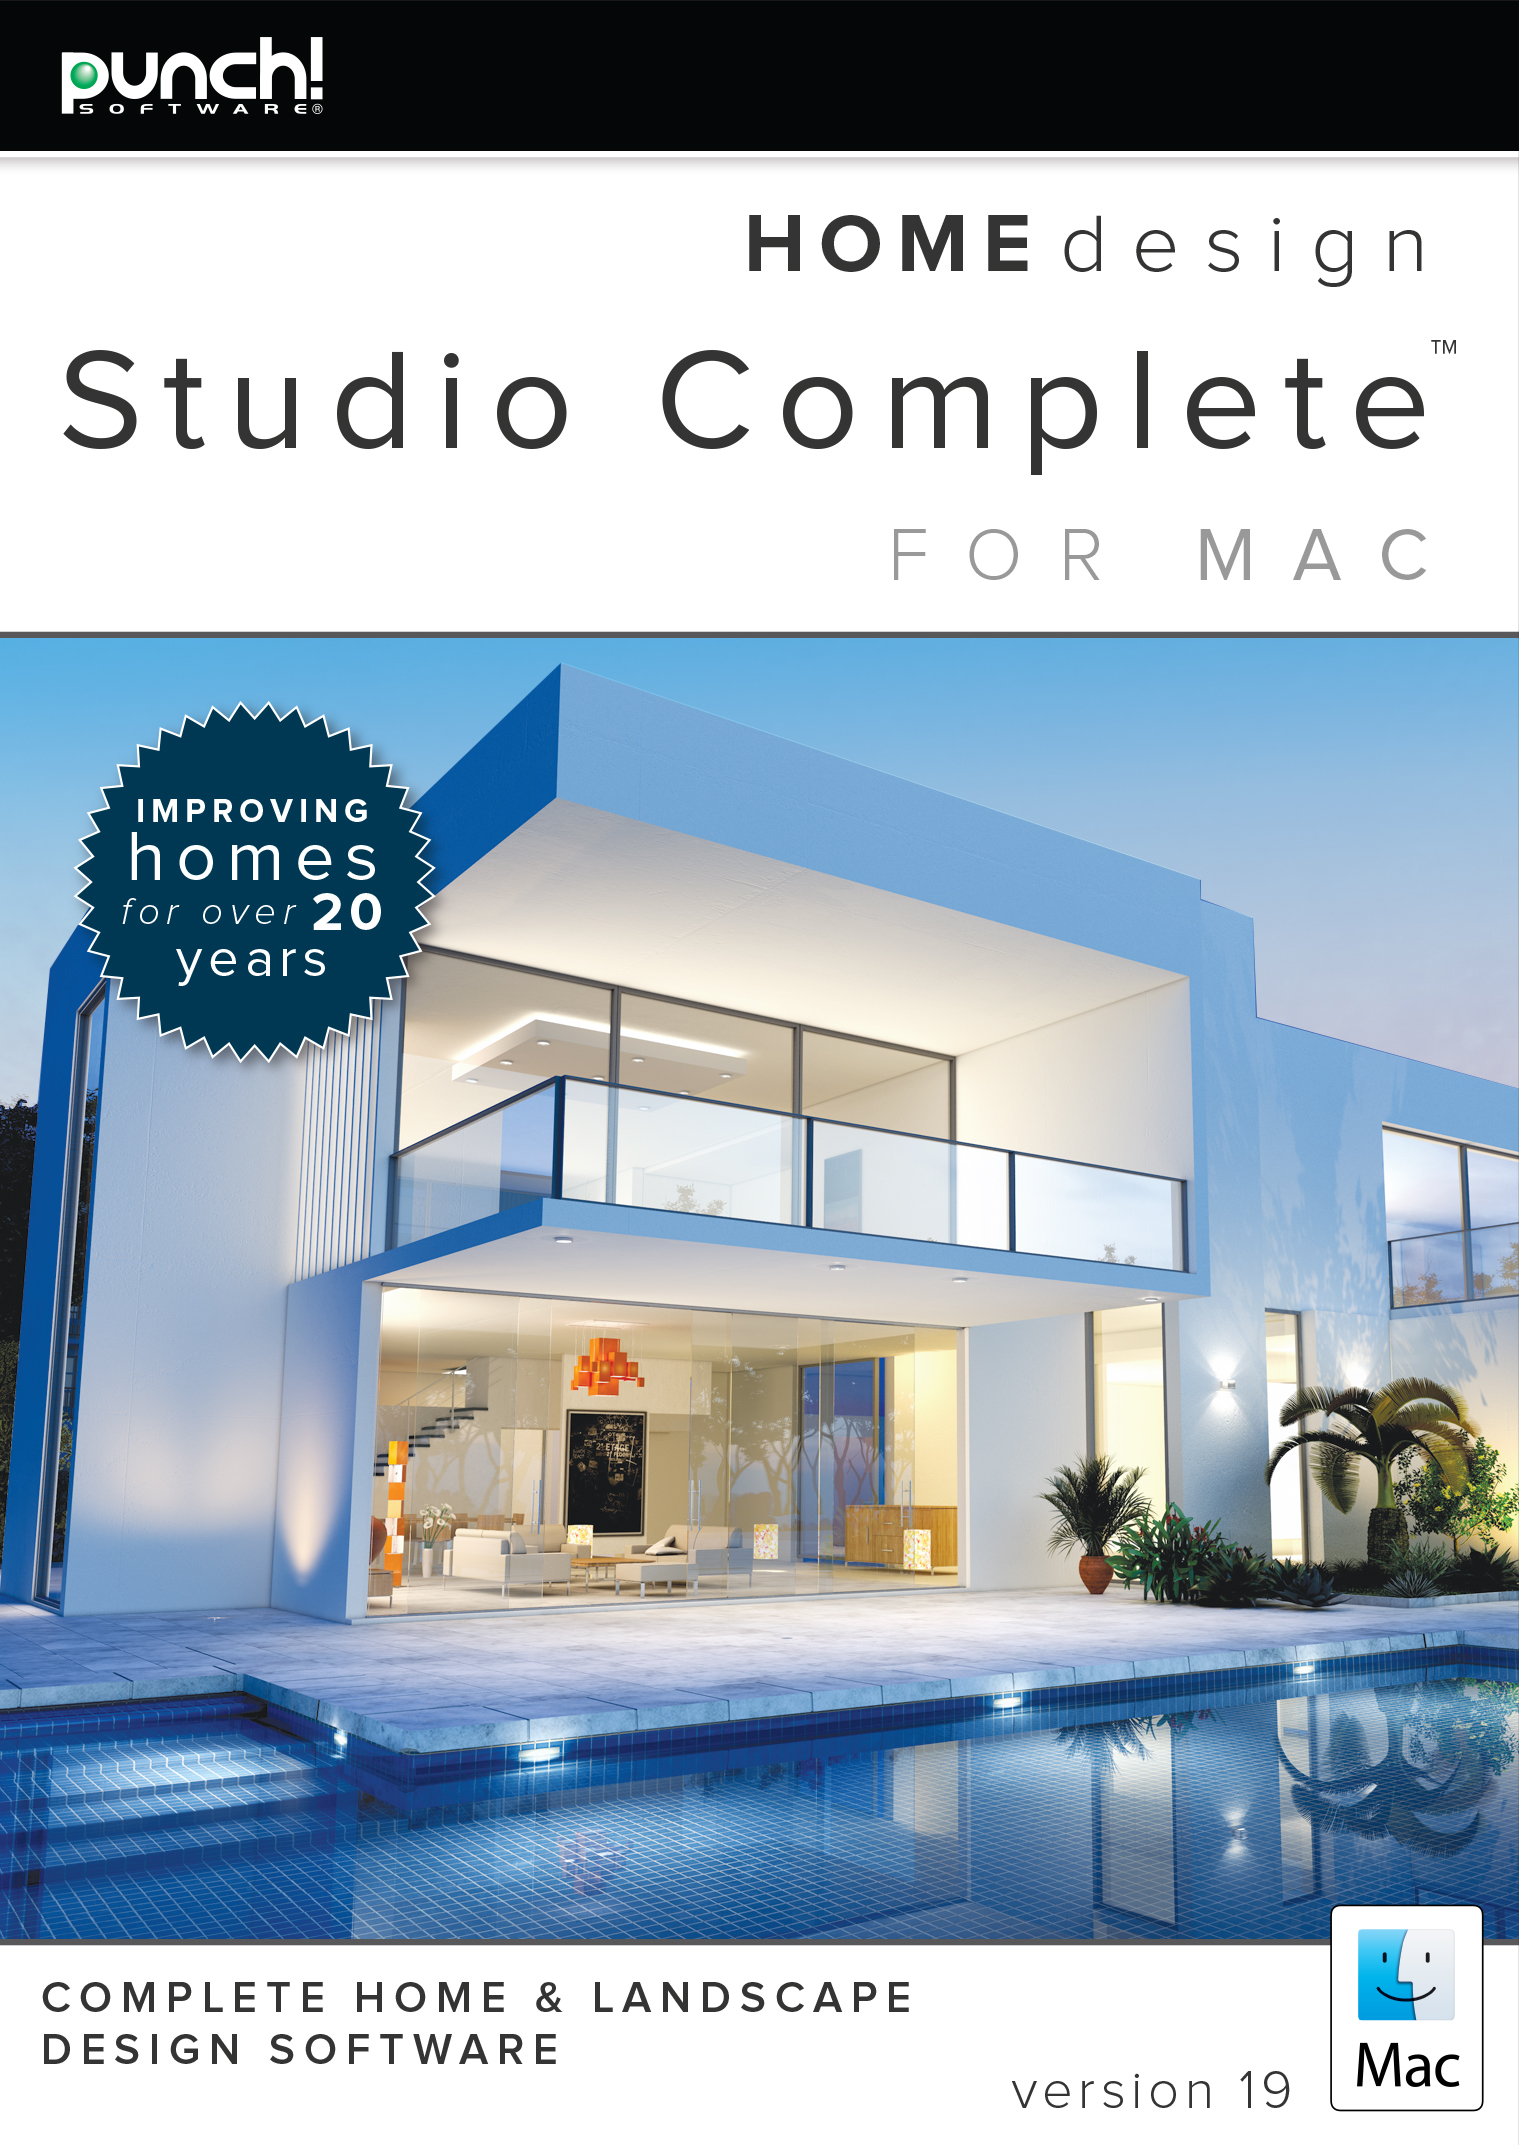 Punch! Home Design Studio Complete for Mac v19 [Download] by Encore